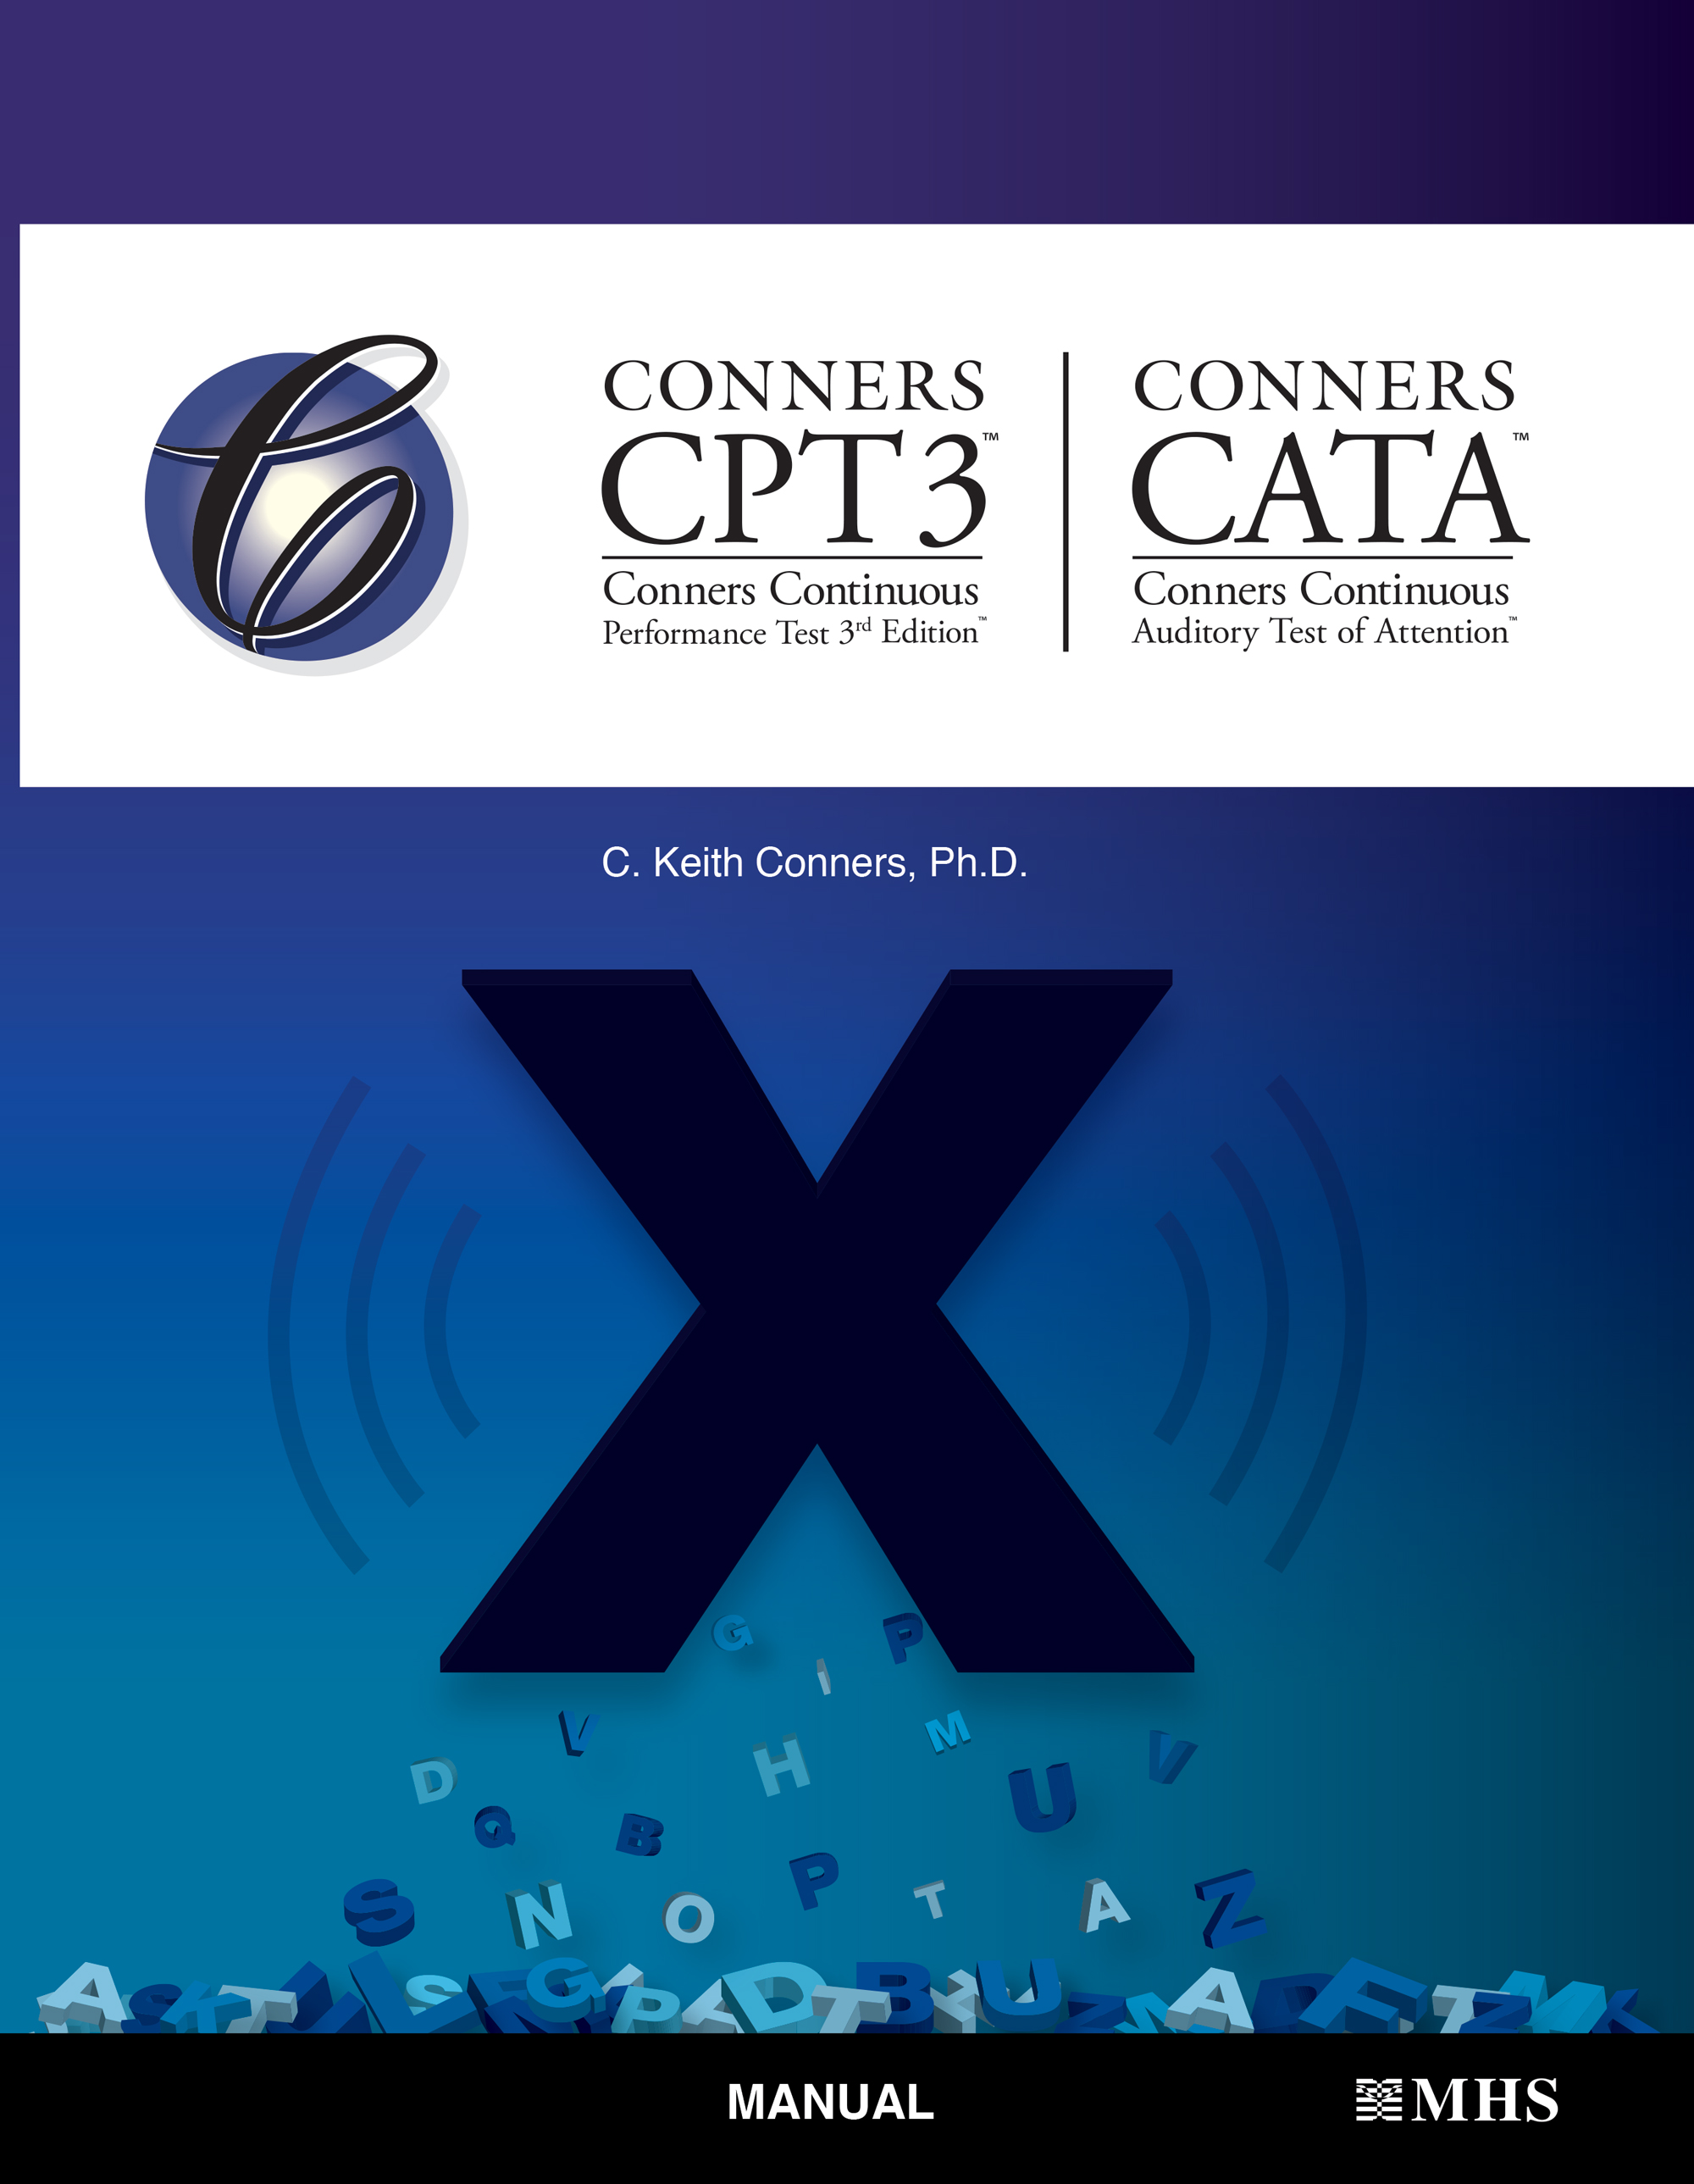 Conners CPT 3 and Conners CATA